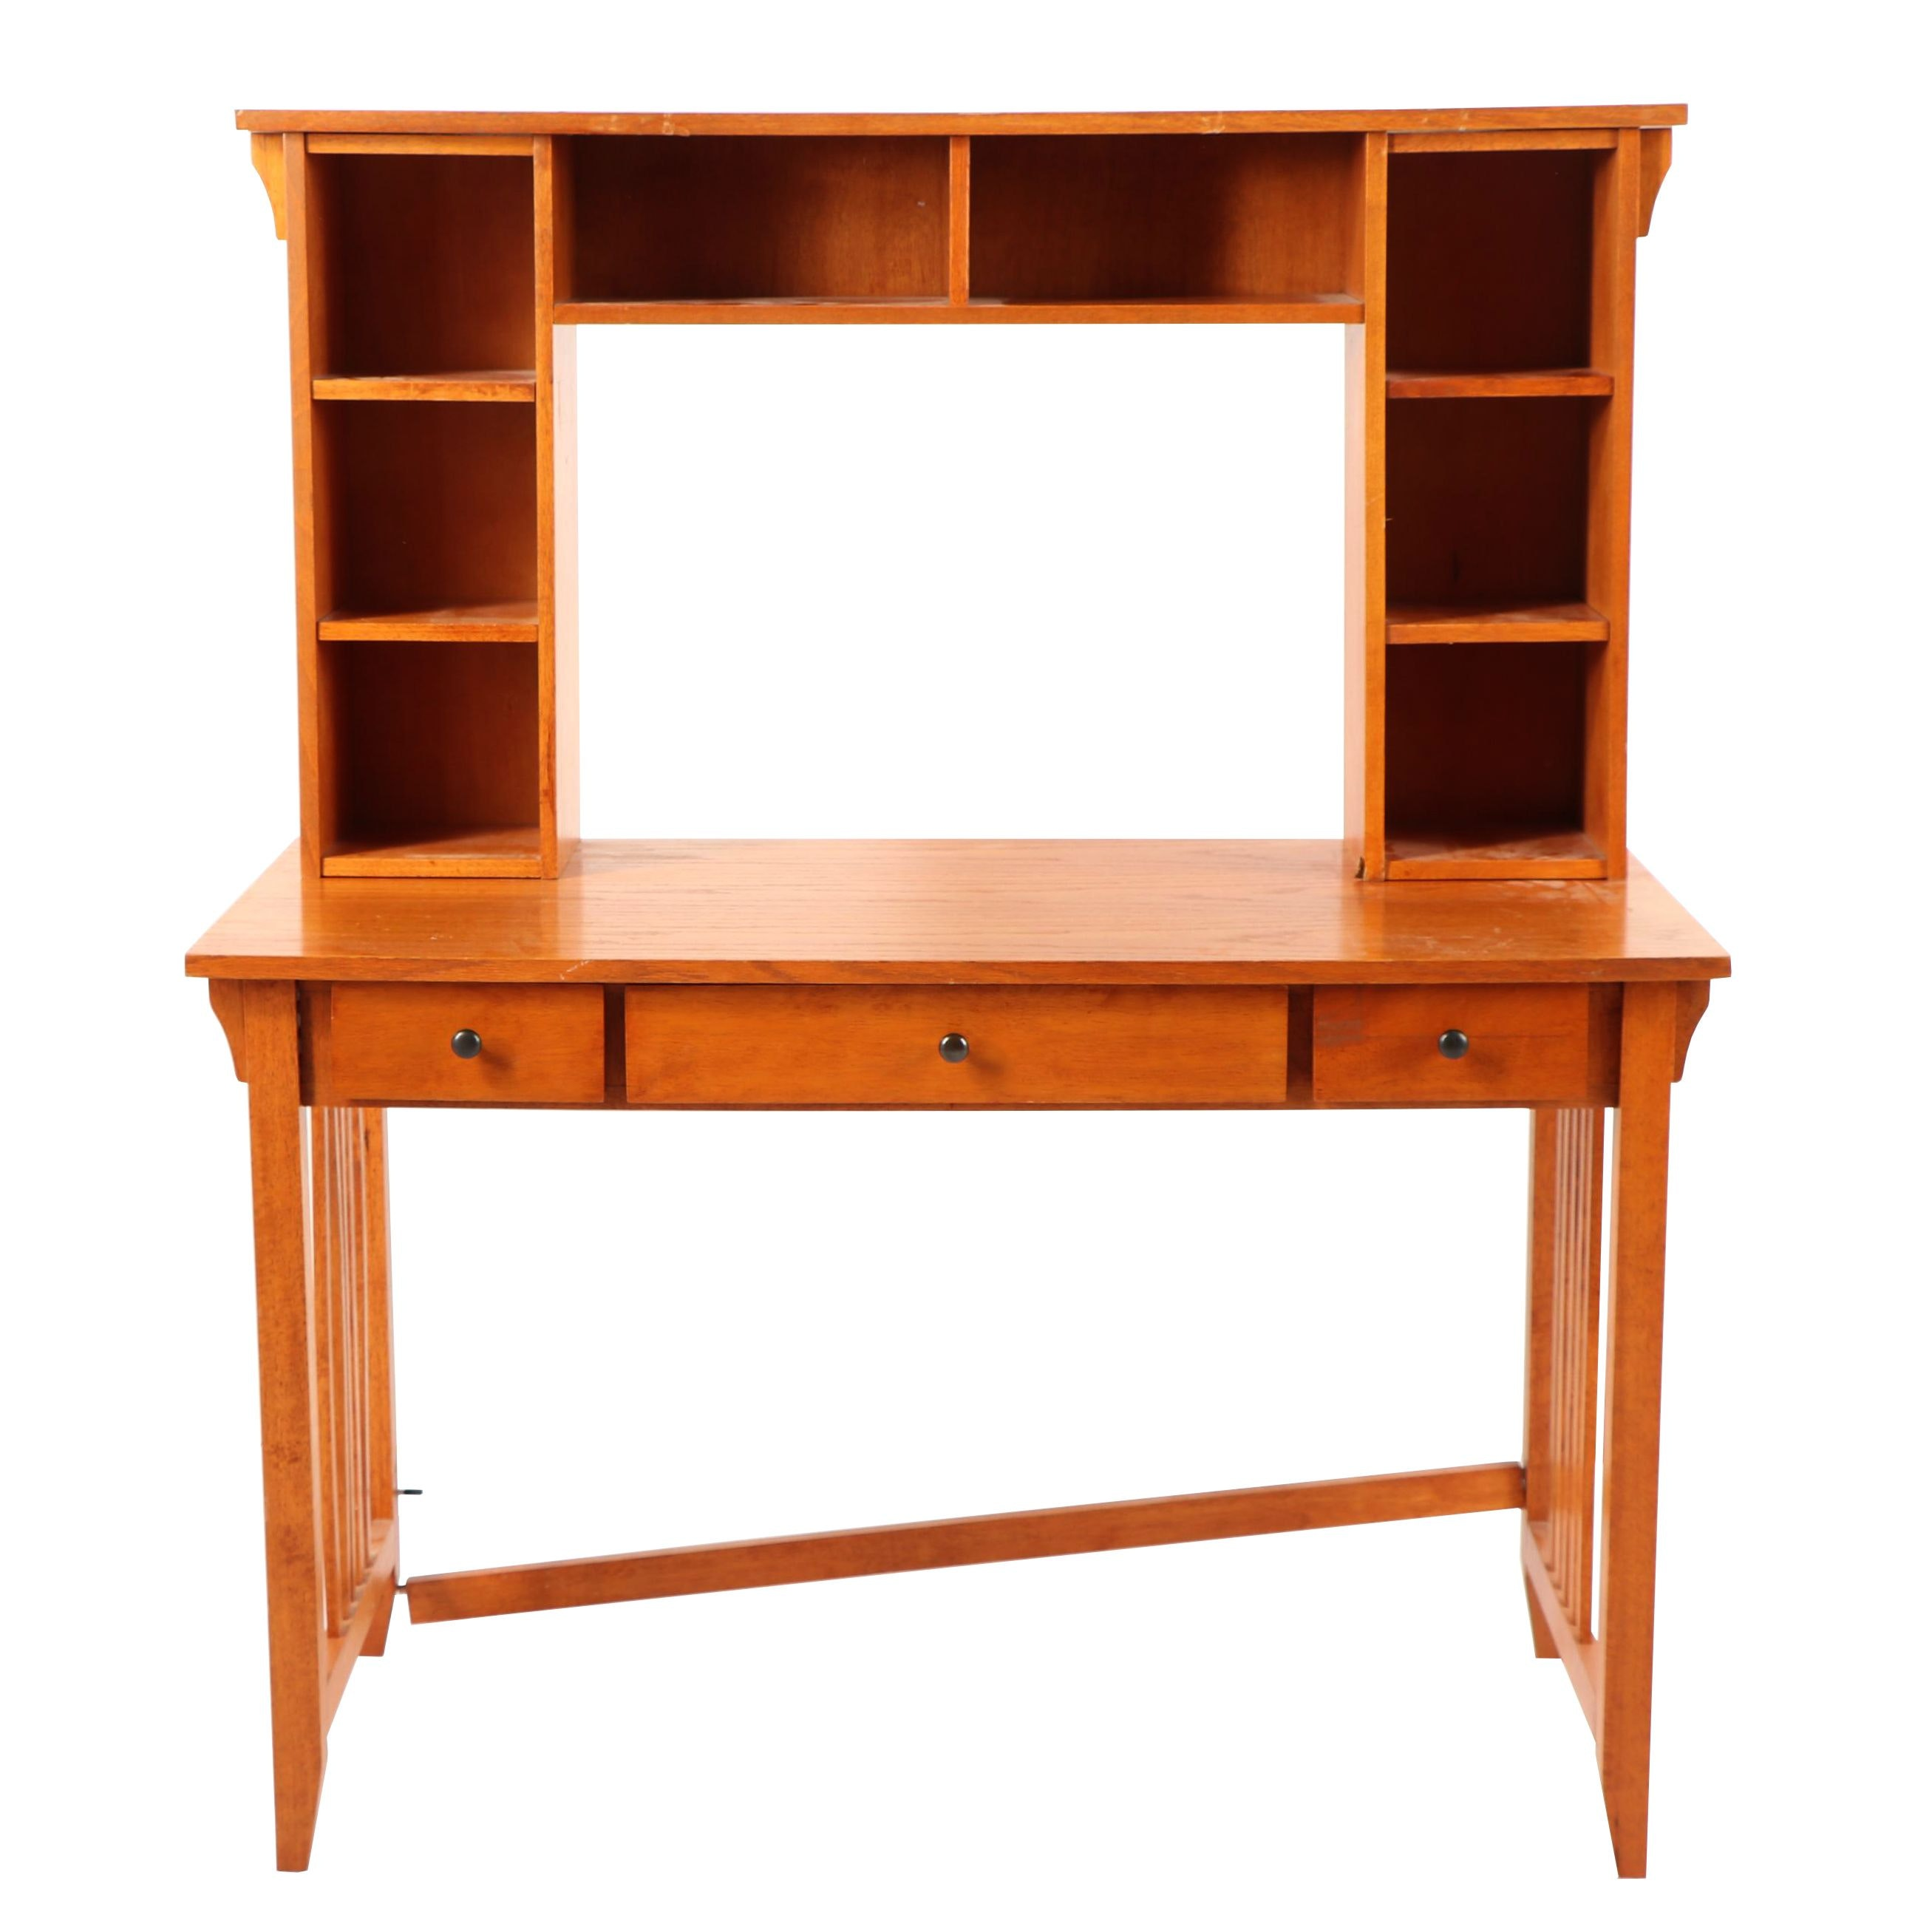 Mission Style Desk with Storage Hutch